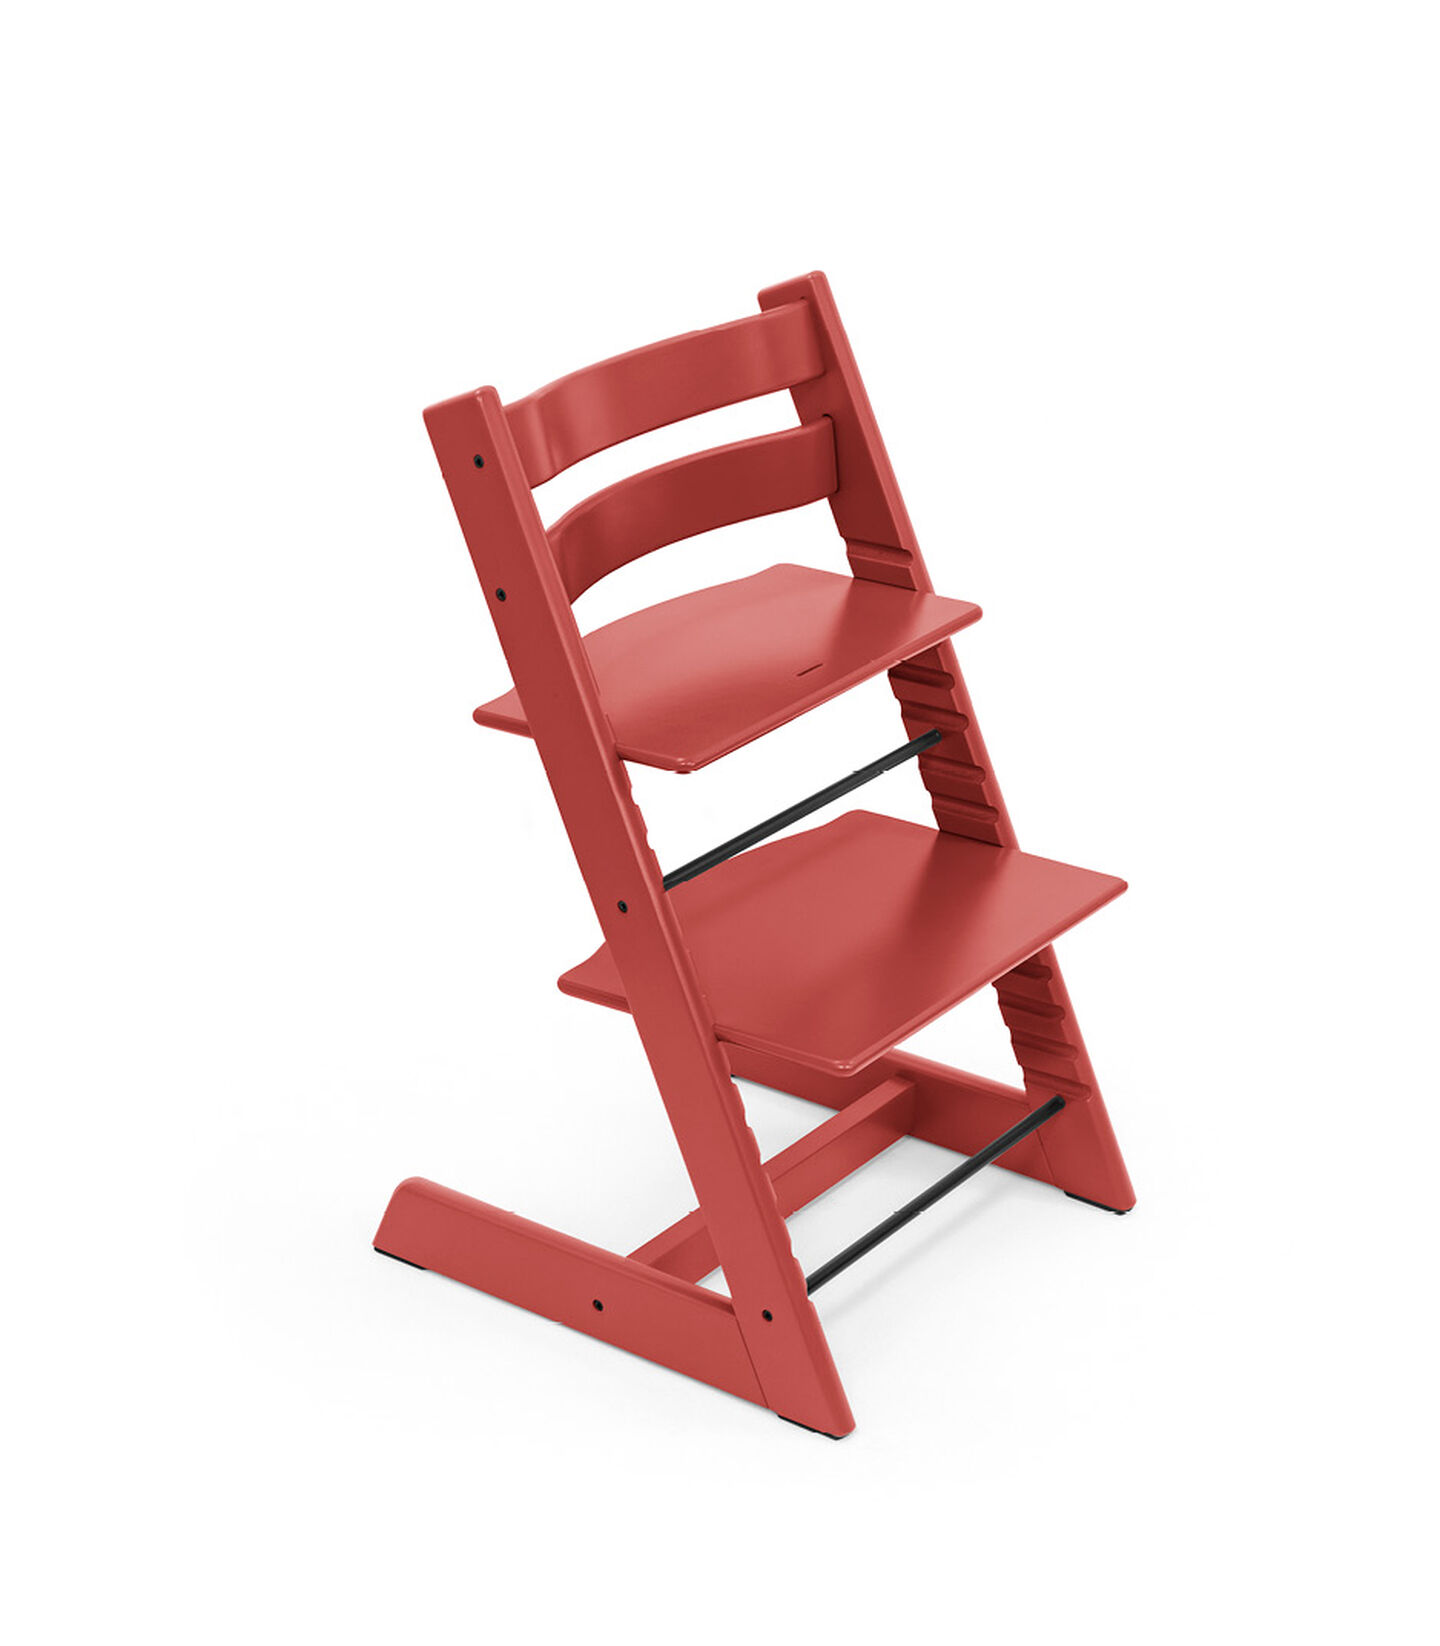 Tripp Trapp® chair Warm Red, Beech Wood. view 1